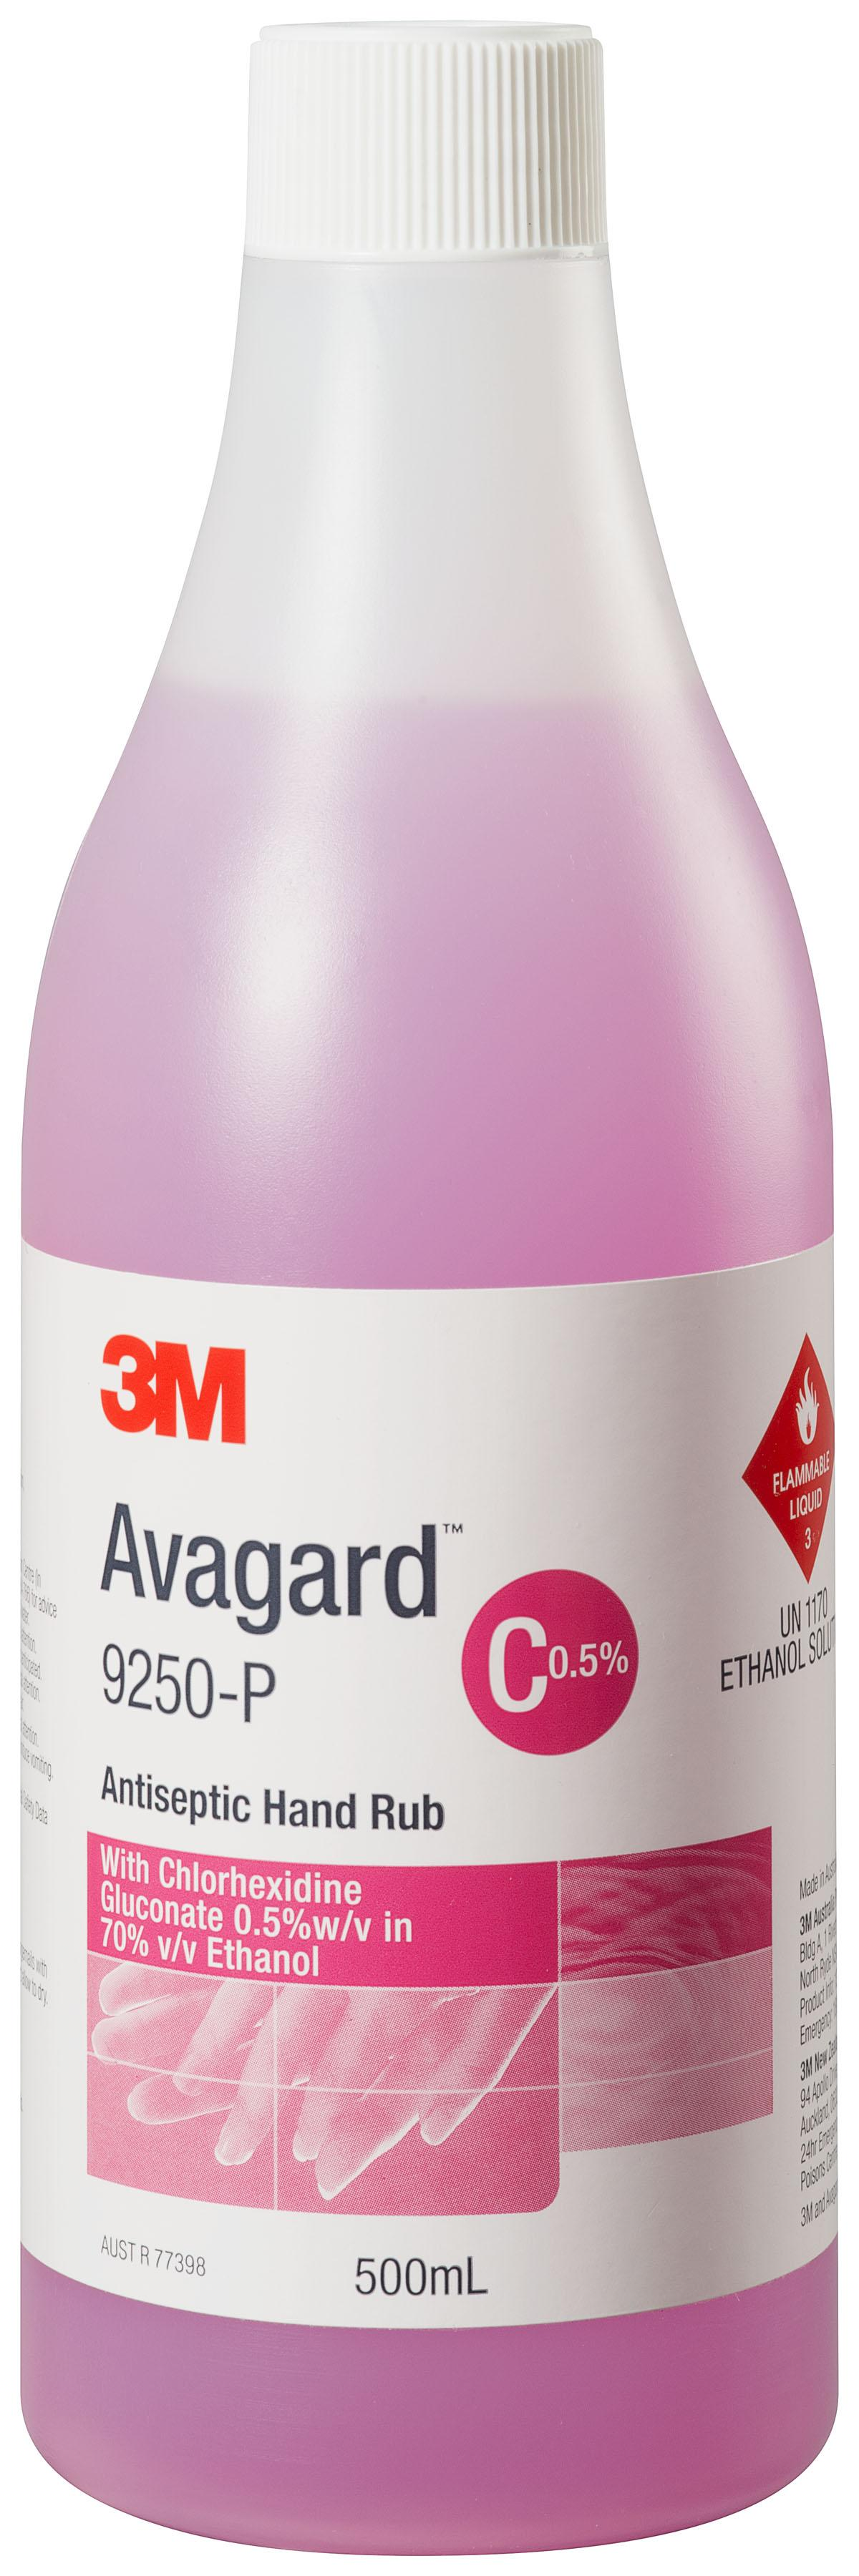 AVAGARD ANTISEPTIC H/RUB (9250P)   500ML